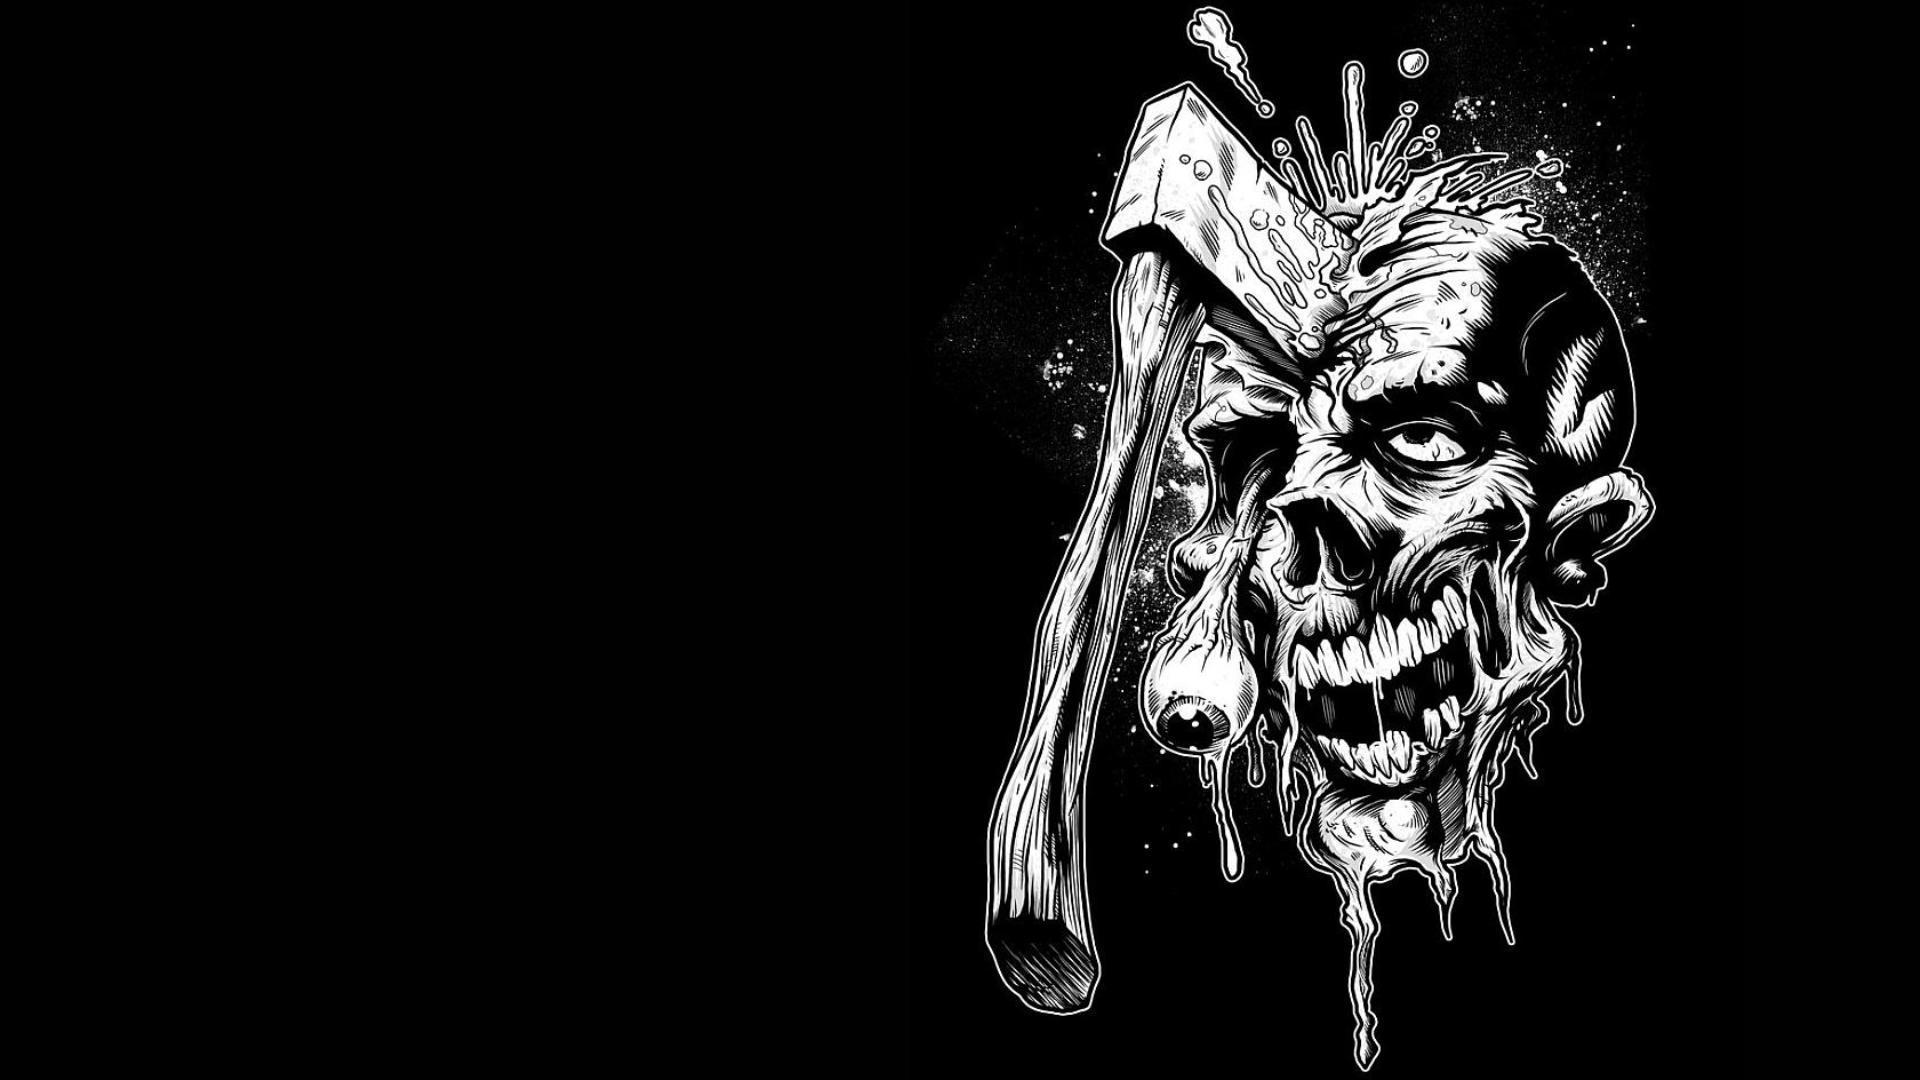 Hd wallpaper zombie - 1920x1080 Zombie Art Ax Eyes Wallpaper Background Full Hd